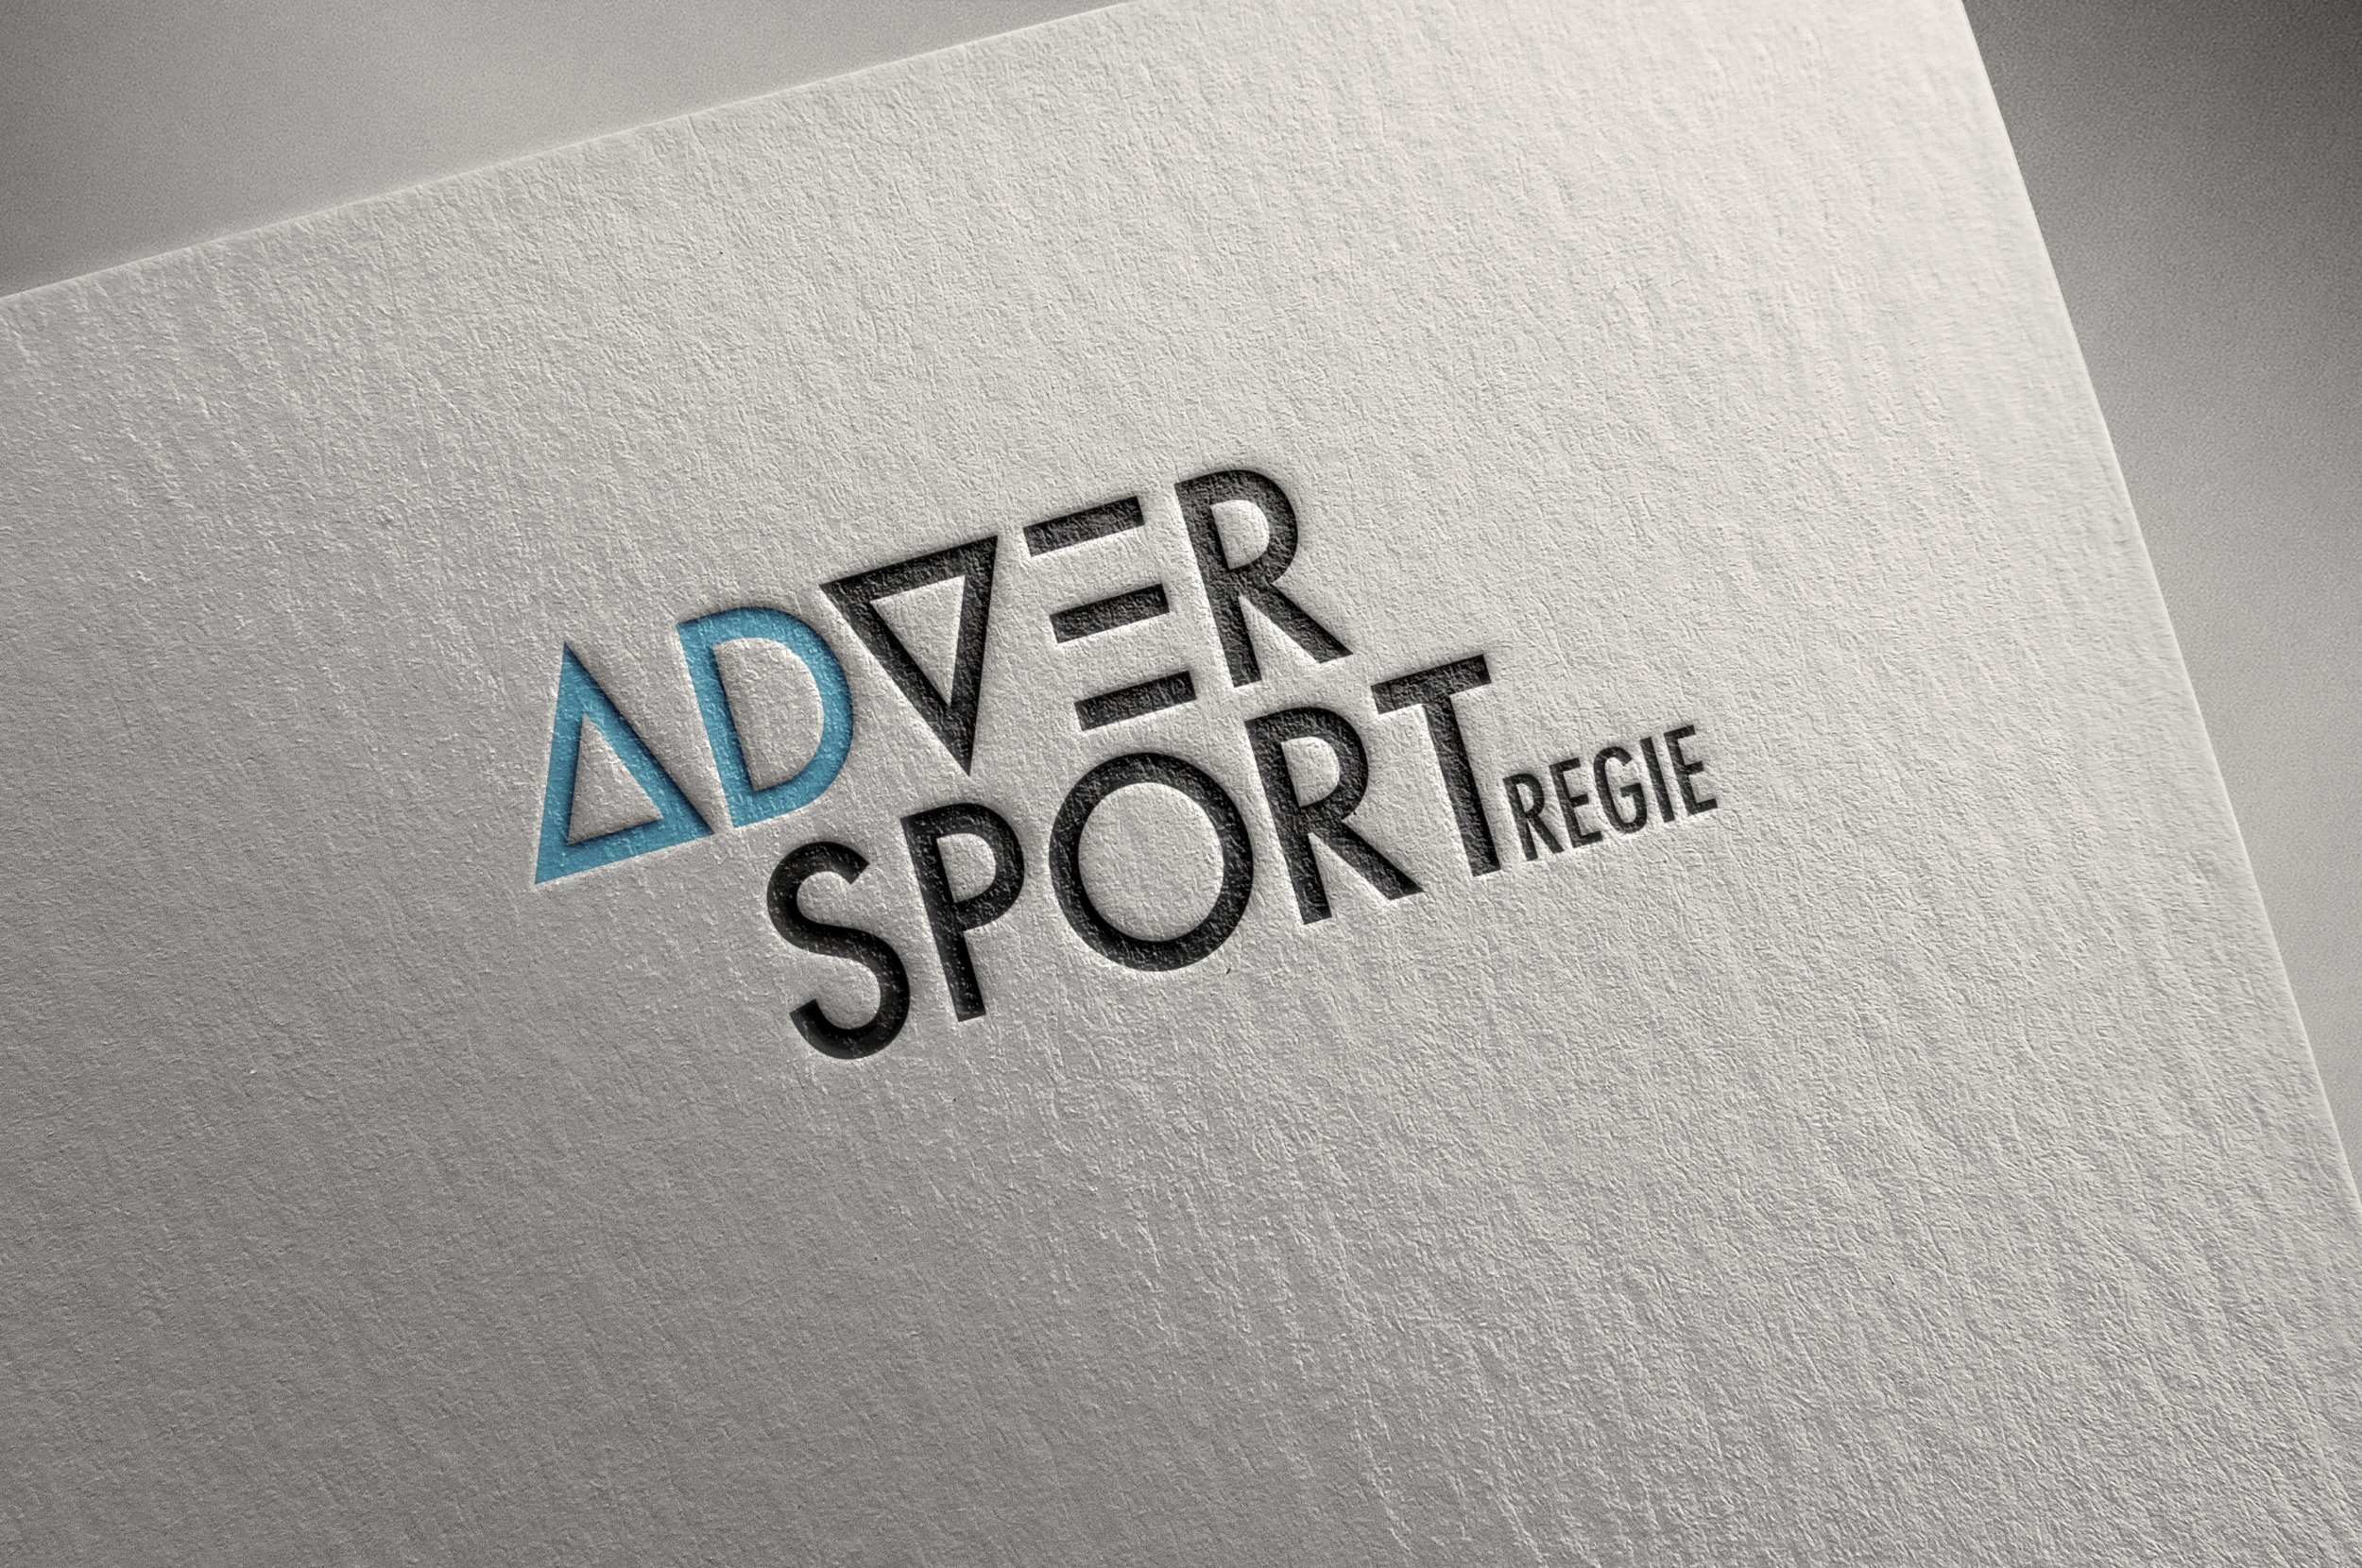 Carte de visite Advertsport